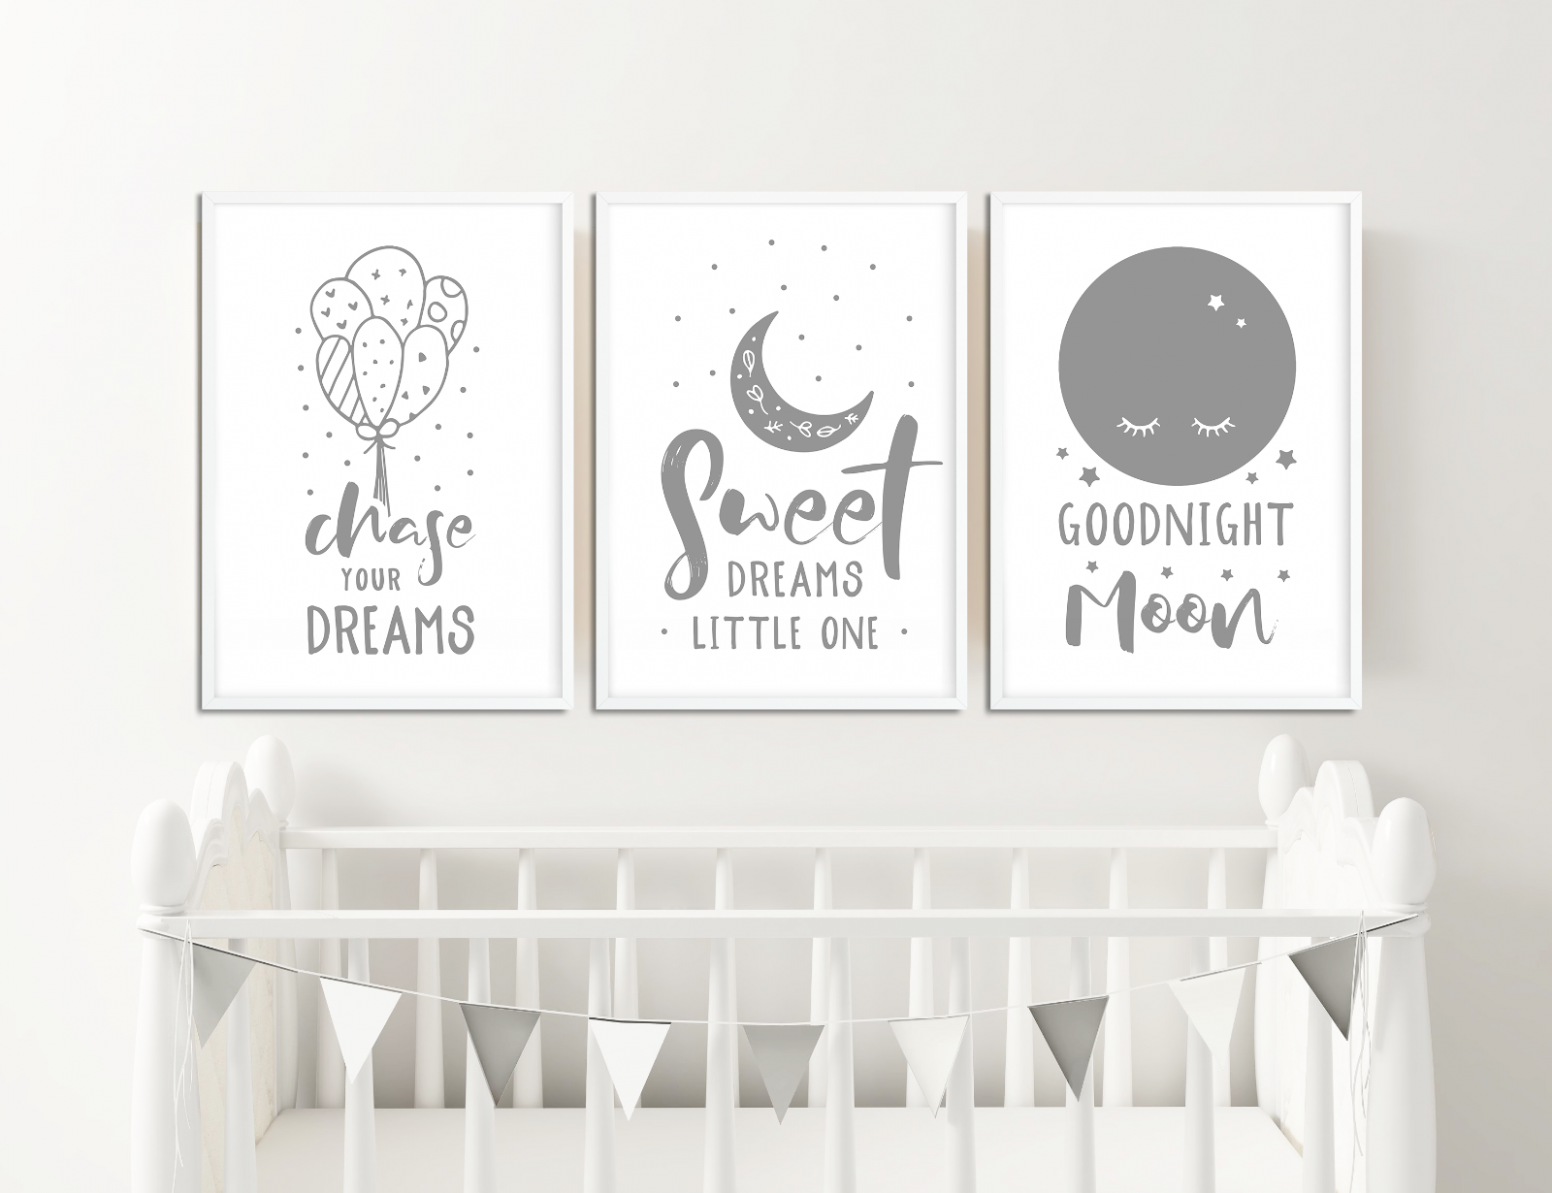 Details about Grey Nursery Prints Boys / Girls Bedroom Pictures Baby Room  Decor Ideas Baby - baby room prints